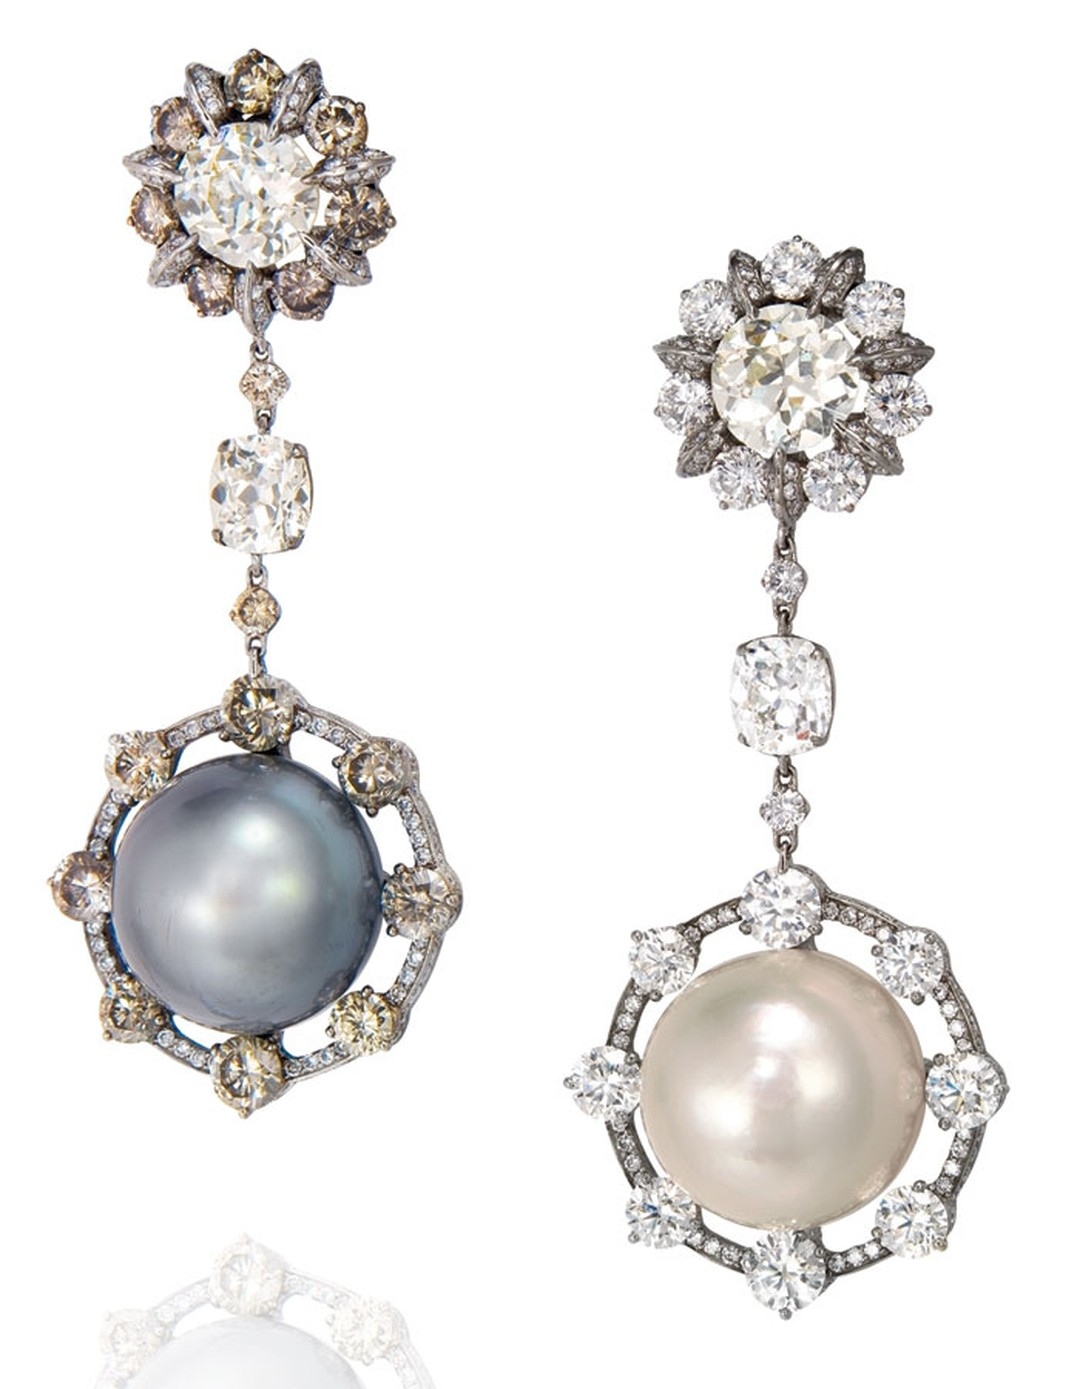 Christies_Pearl-earpendants